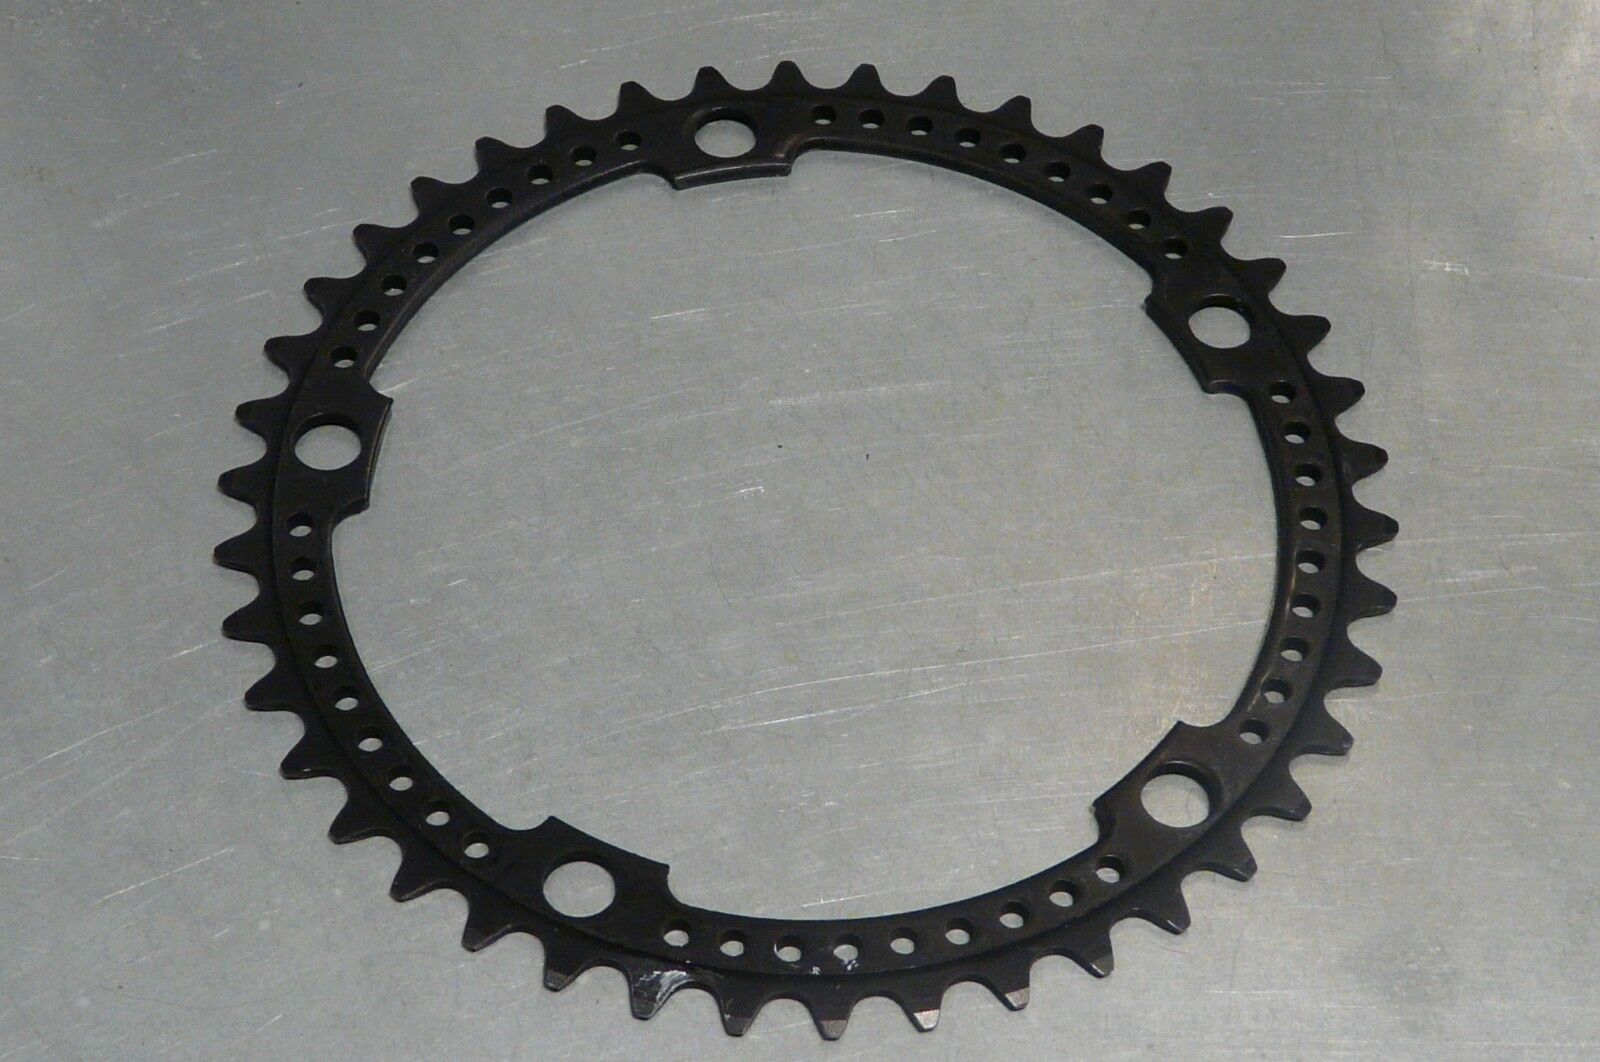 SR ROYAL SUPER EXTRALIGHT 42t DRILLED 3 32 ROAD Chain Wheel BX21 Rs9